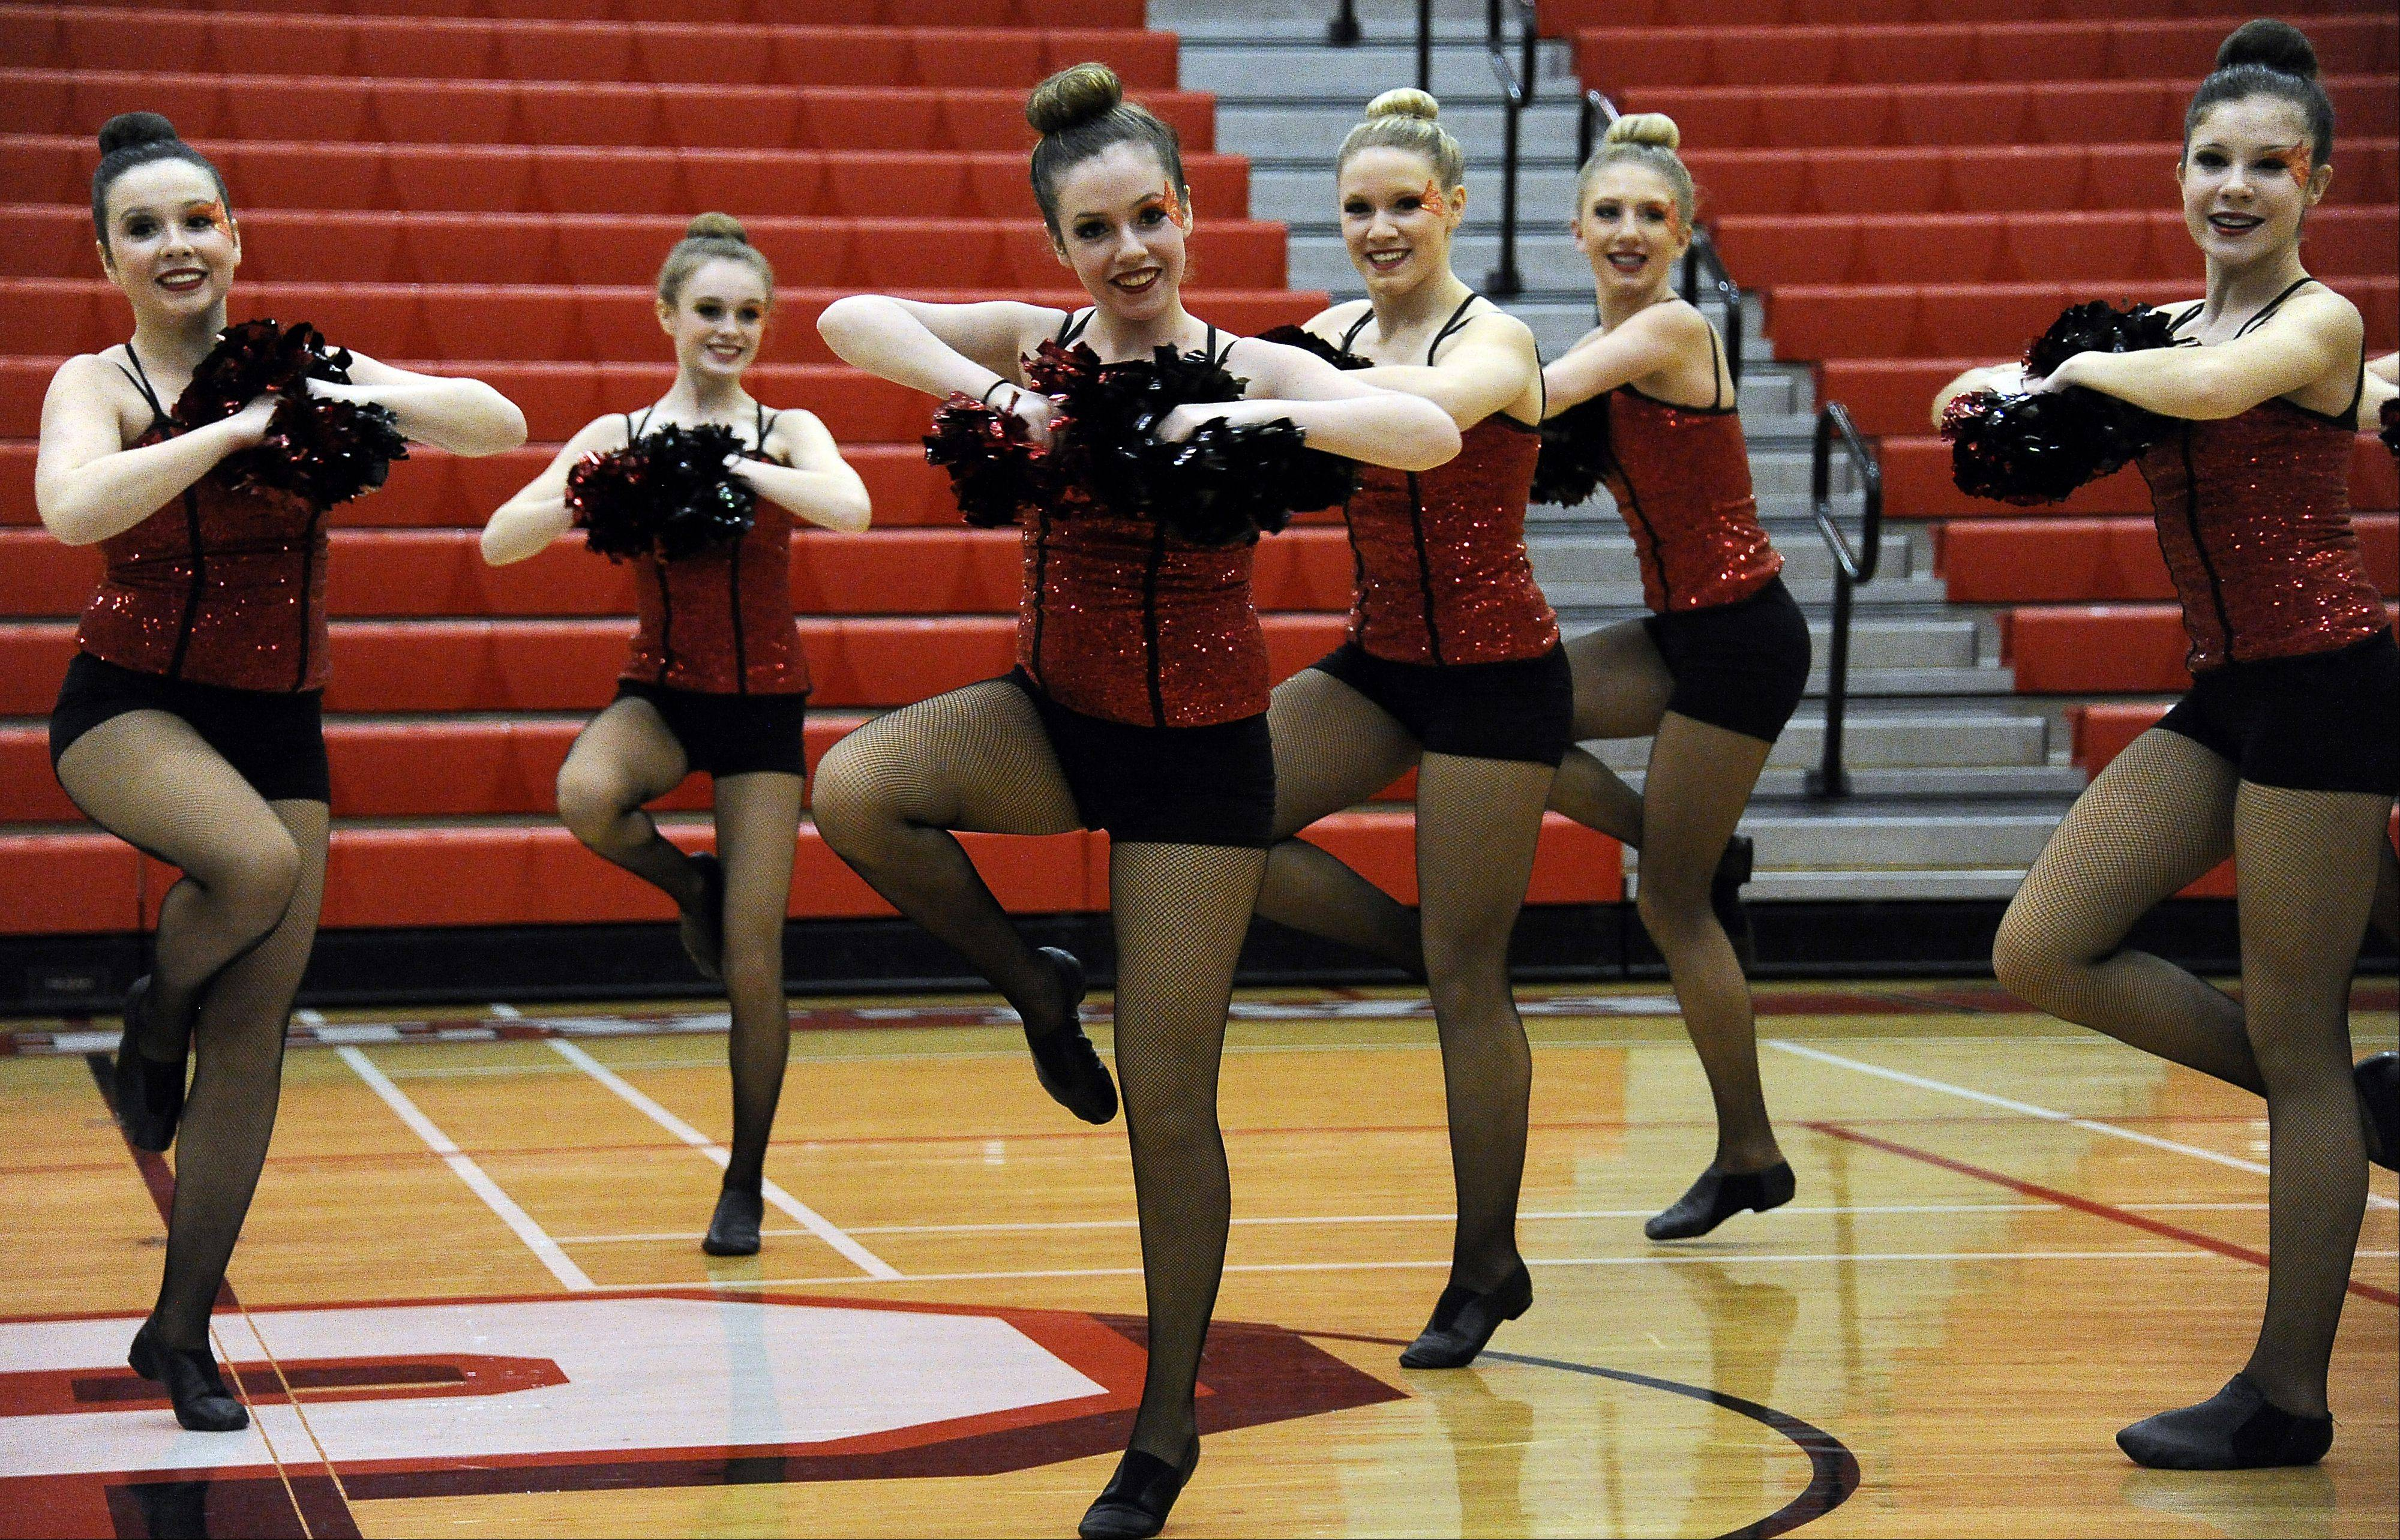 Dancing in the (2A) division are members of South Elgin High School dance squad with Taylor Russo (center) leading the way in the 1st annual Sectional Competition at Palatine High School on Saturday.